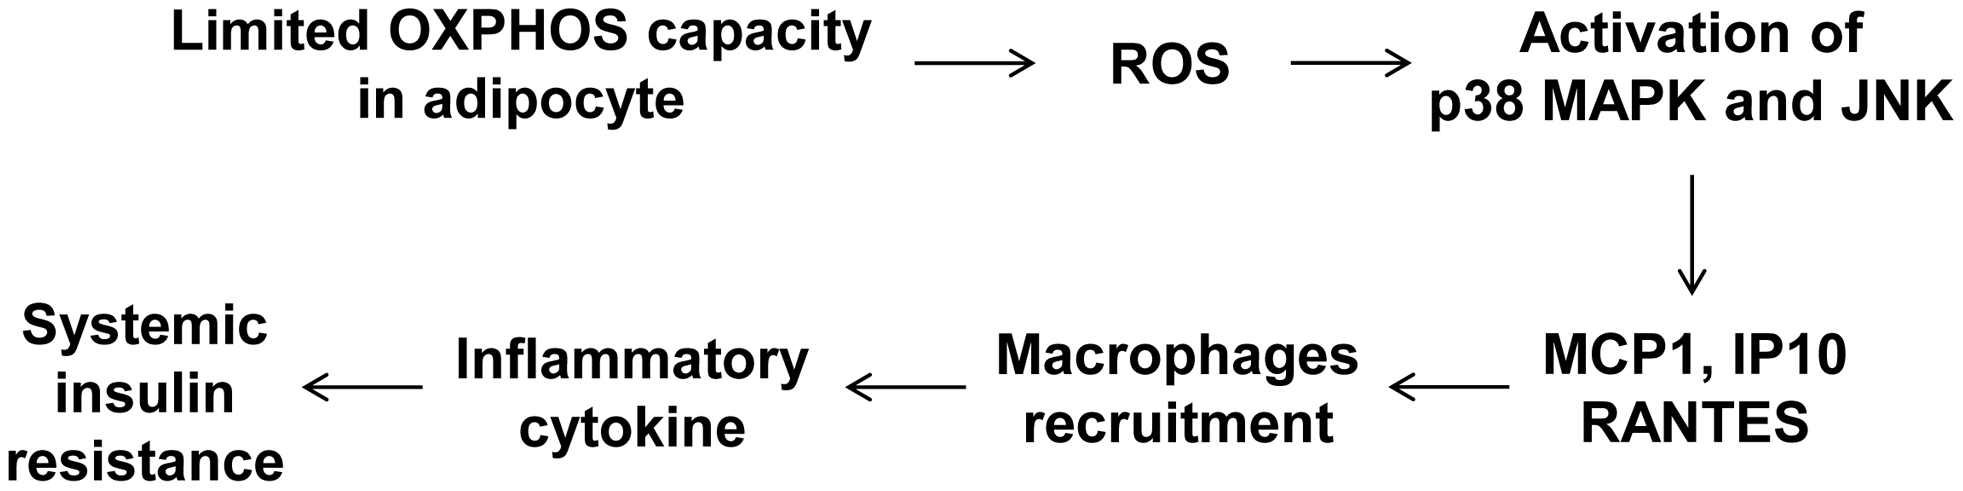 A model of the systemic insulin resistance developed by <i>Crif1</i>-haploinsufficient mice, which shows limited adipose OXPHOS capacity.